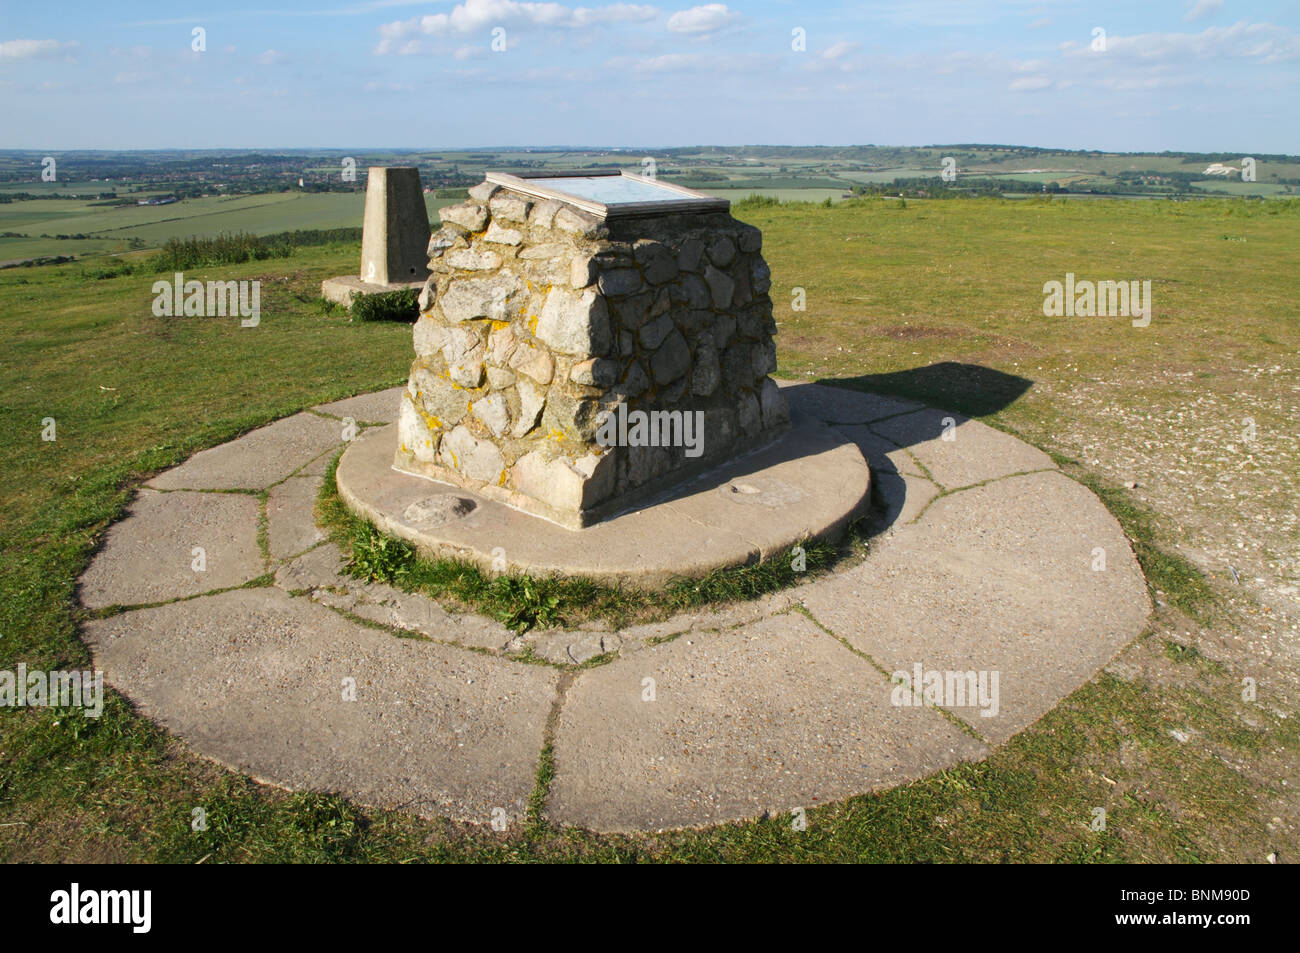 Ivinghoe Beacon near the Ridgeway in the Chiltern Hills, Buckinghamshire, England - Stock Image